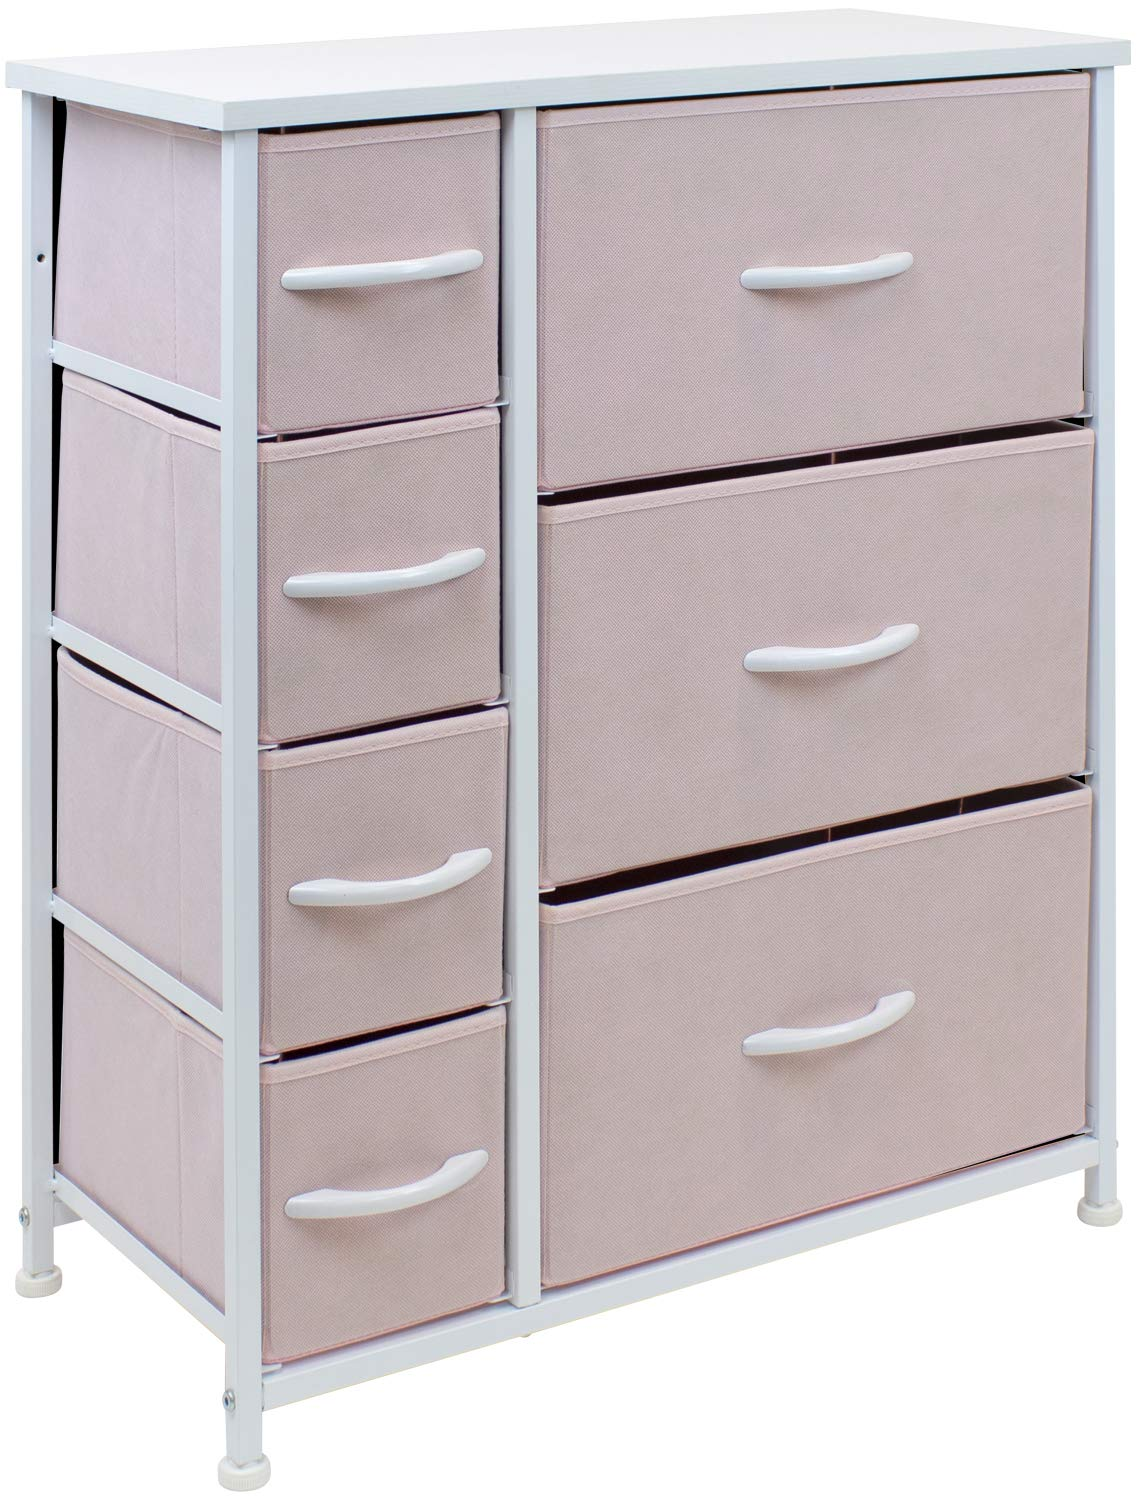 Sorbus Dresser with 7 Drawers - Furniture Storage Chest for Kid's, Teens, Bedroom, Nursery, Playroom, Clothes, Toys - Steel Frame, Wood Top, Fabric Bins (Pastel Pink)